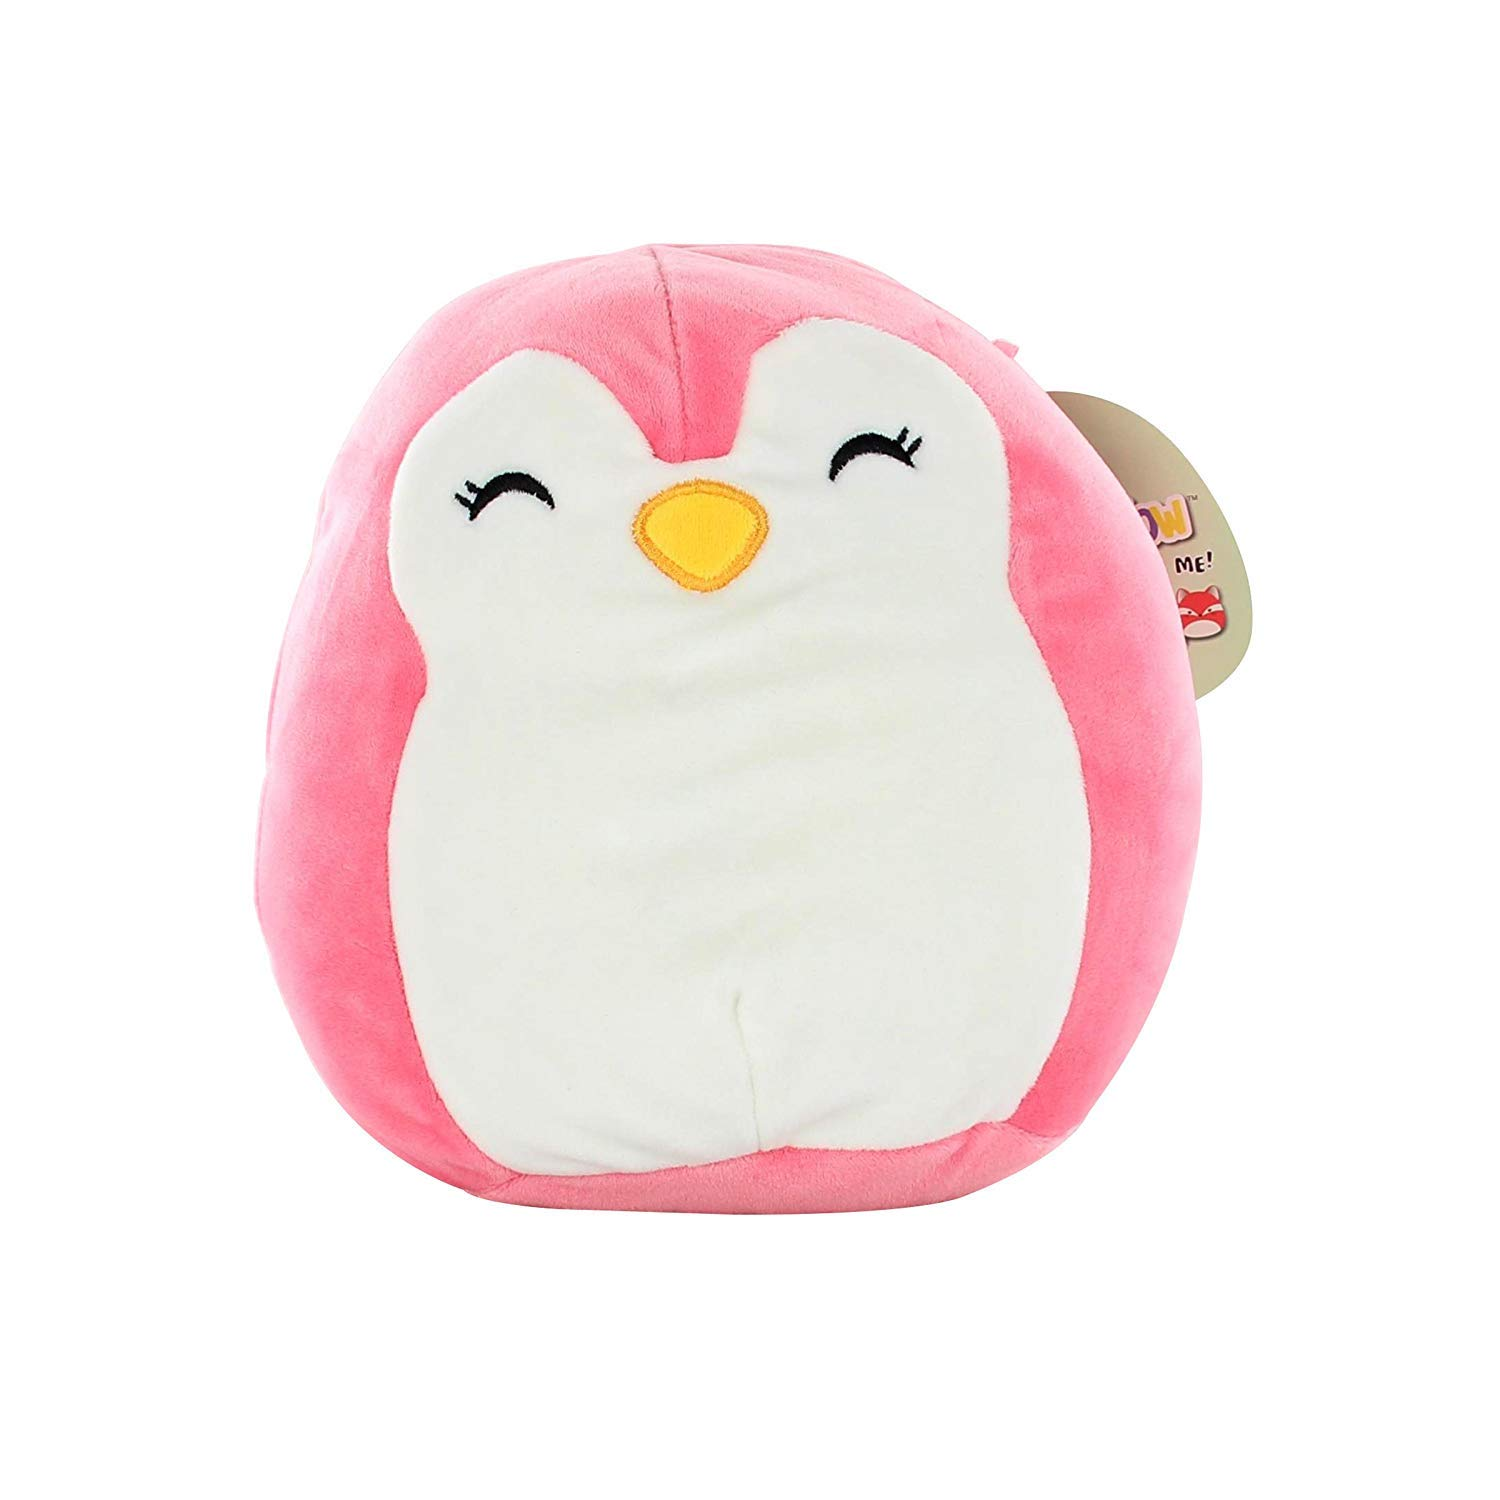 "Kellytoy Squishmallow 9"" Pink Penguin Super Soft Plush Toy Pillow Pet"